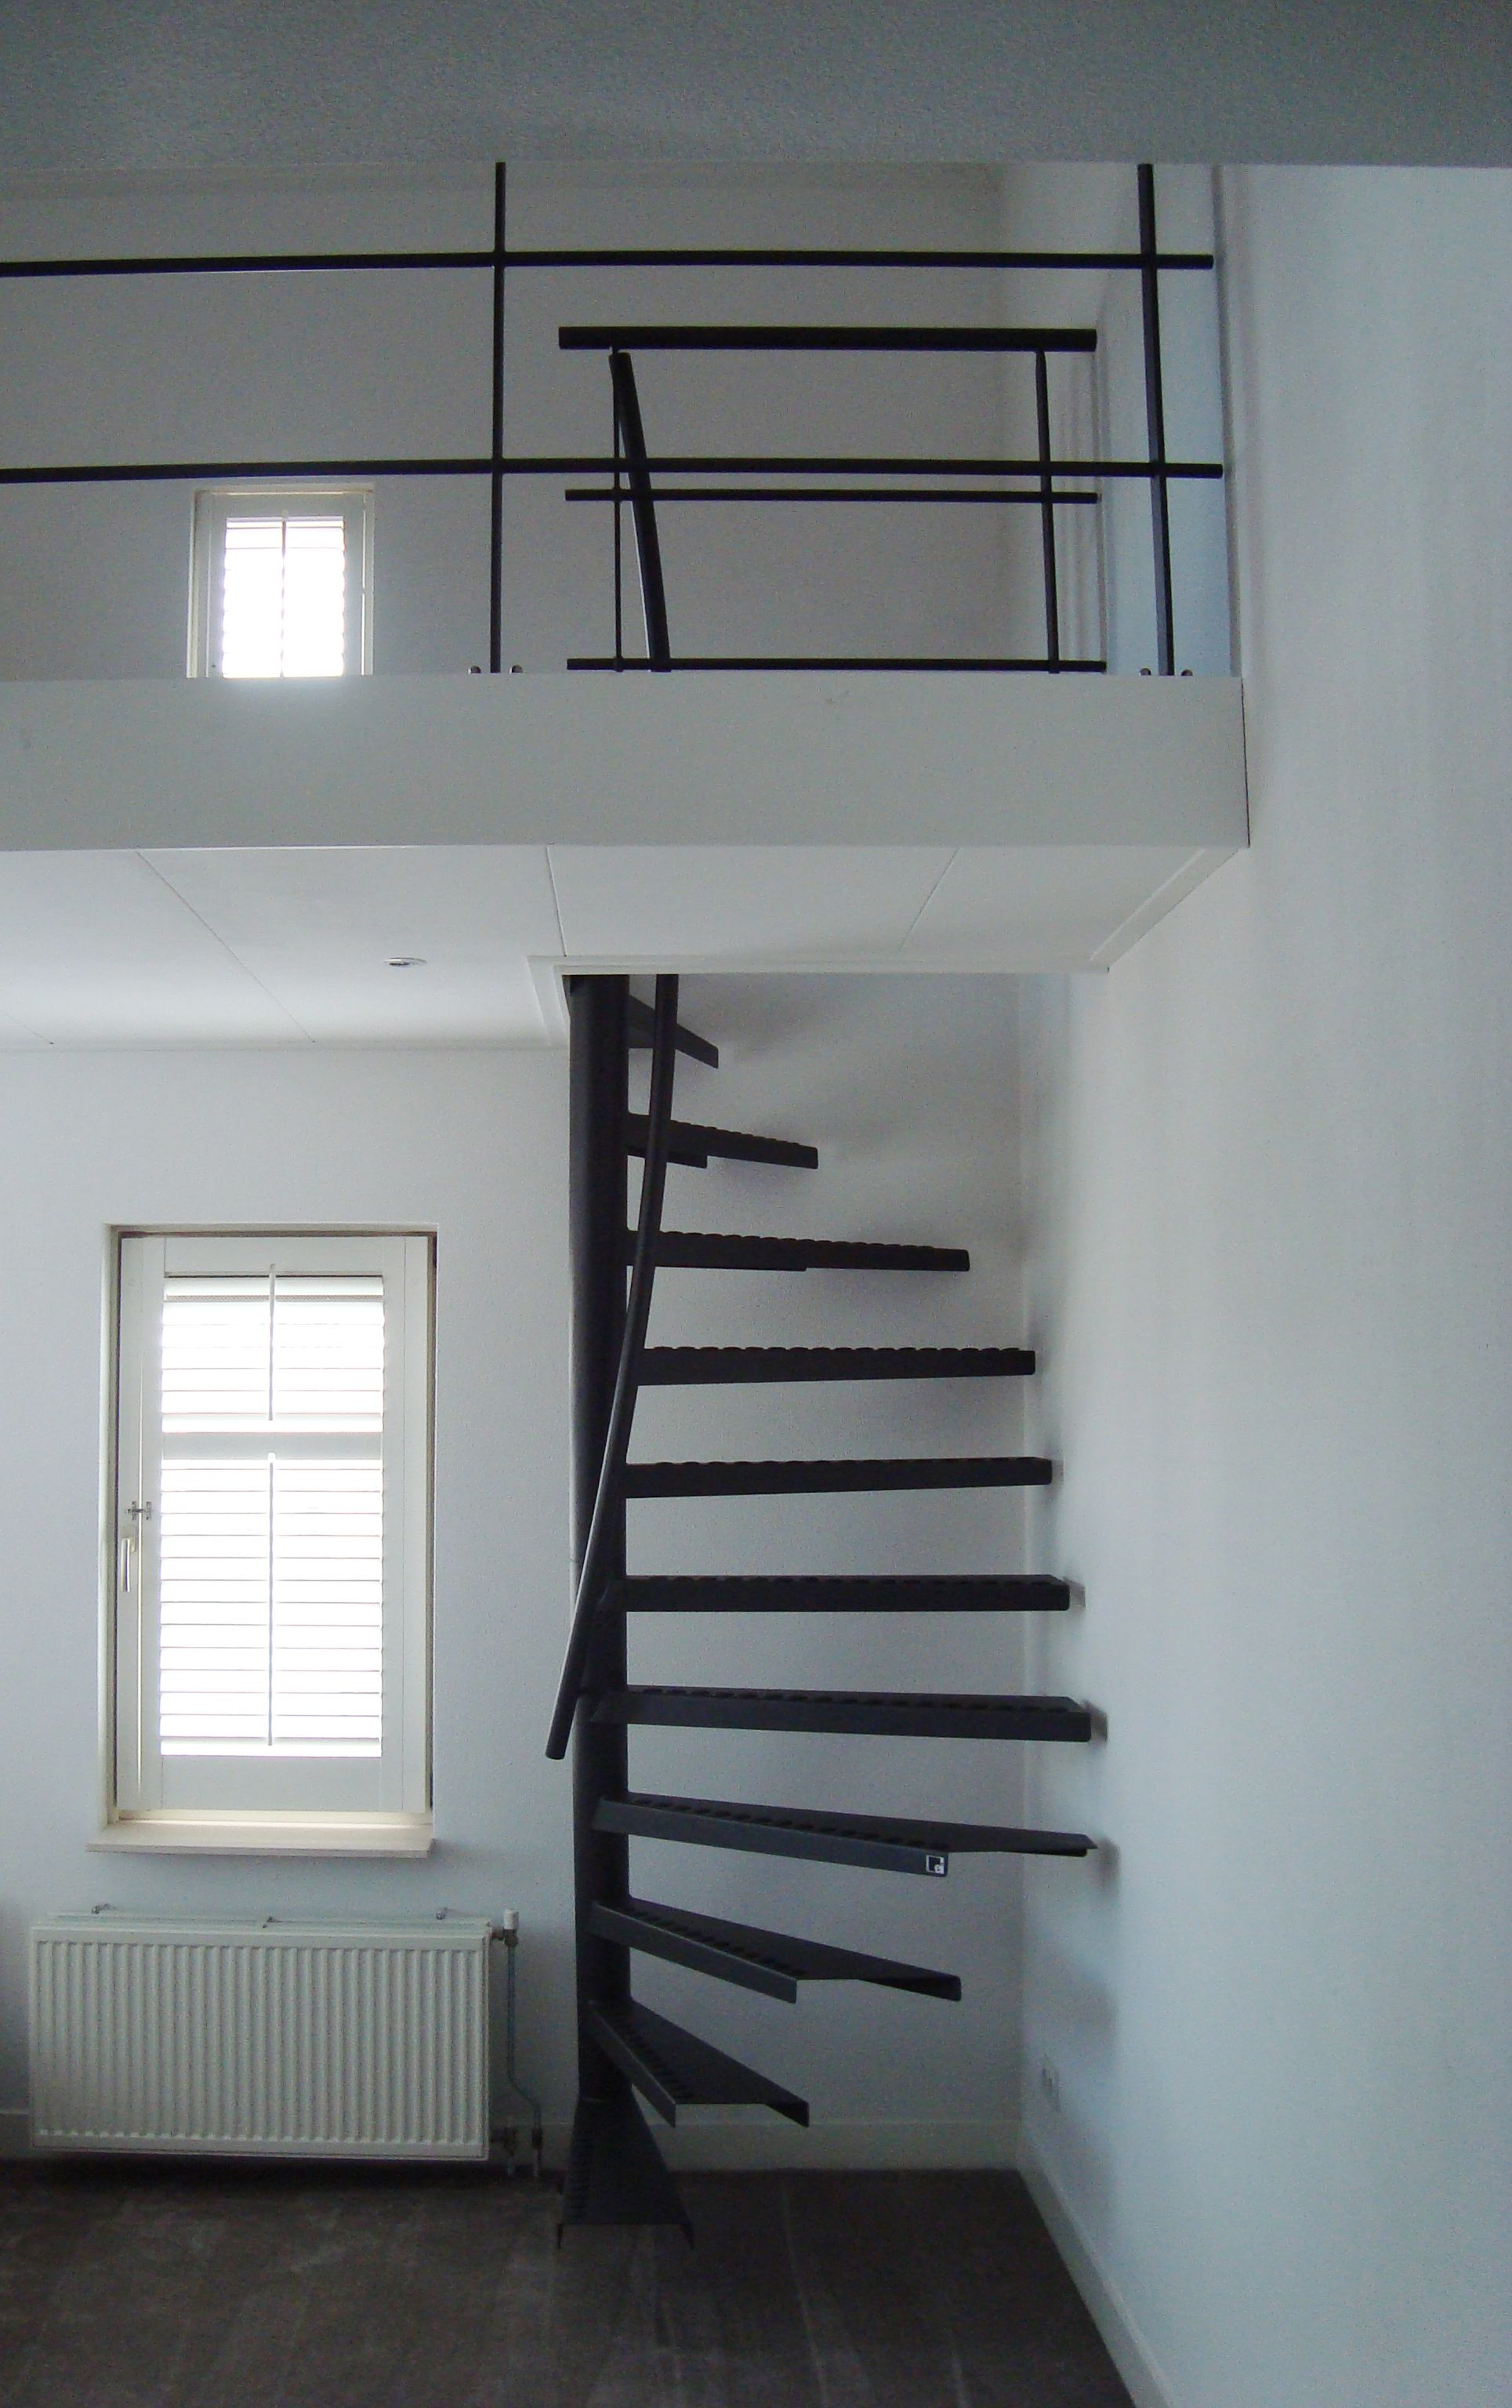 17 Vierkante Meter Woonkamer 1m2 Stairs By Eestairs Perfect Space Saving Solution